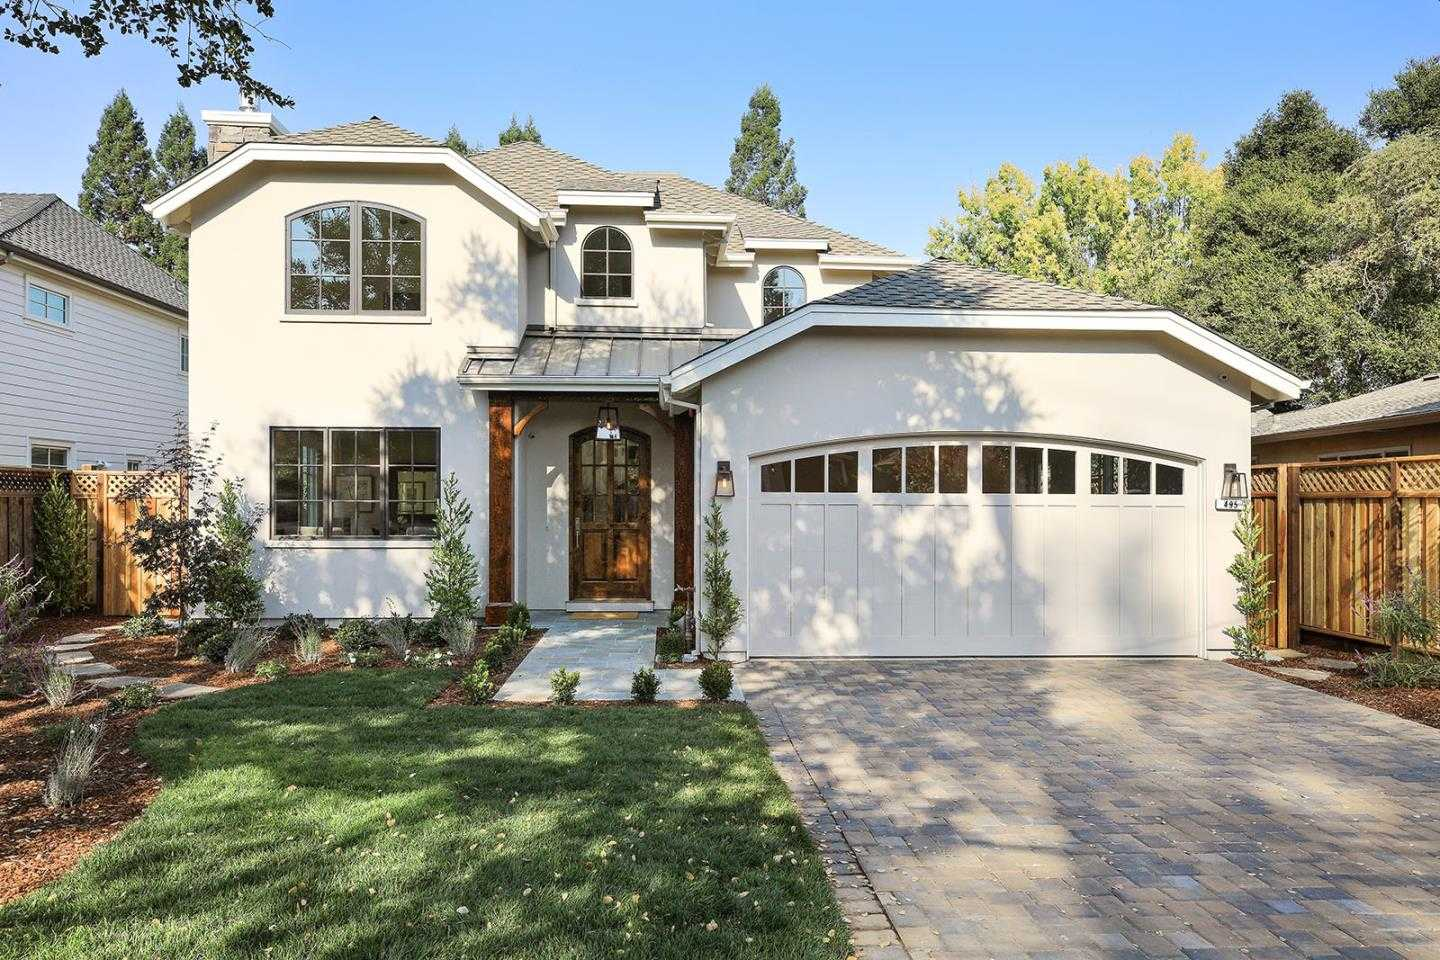 $3,695,000 - 5Br/5Ba -  for Sale in Redwood City